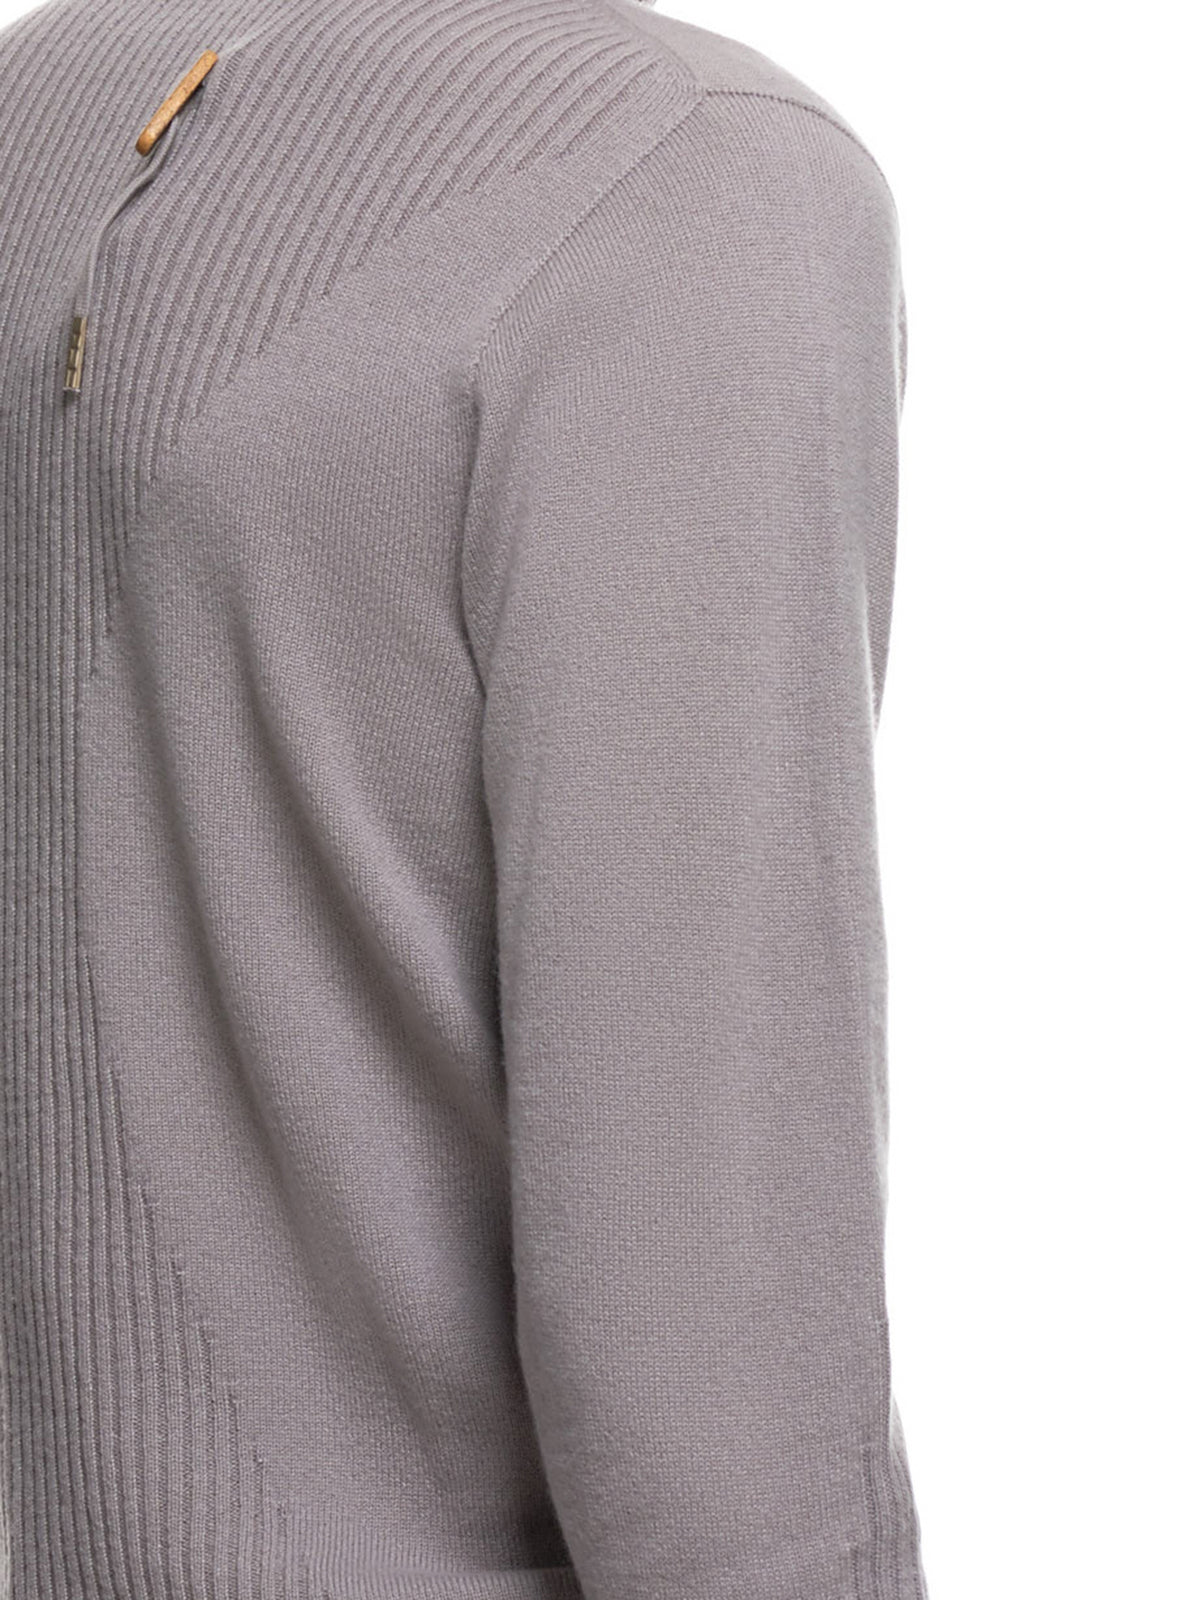 Cashmere Turtleneck (KN6-FPI30001-LIGHT-GREY)